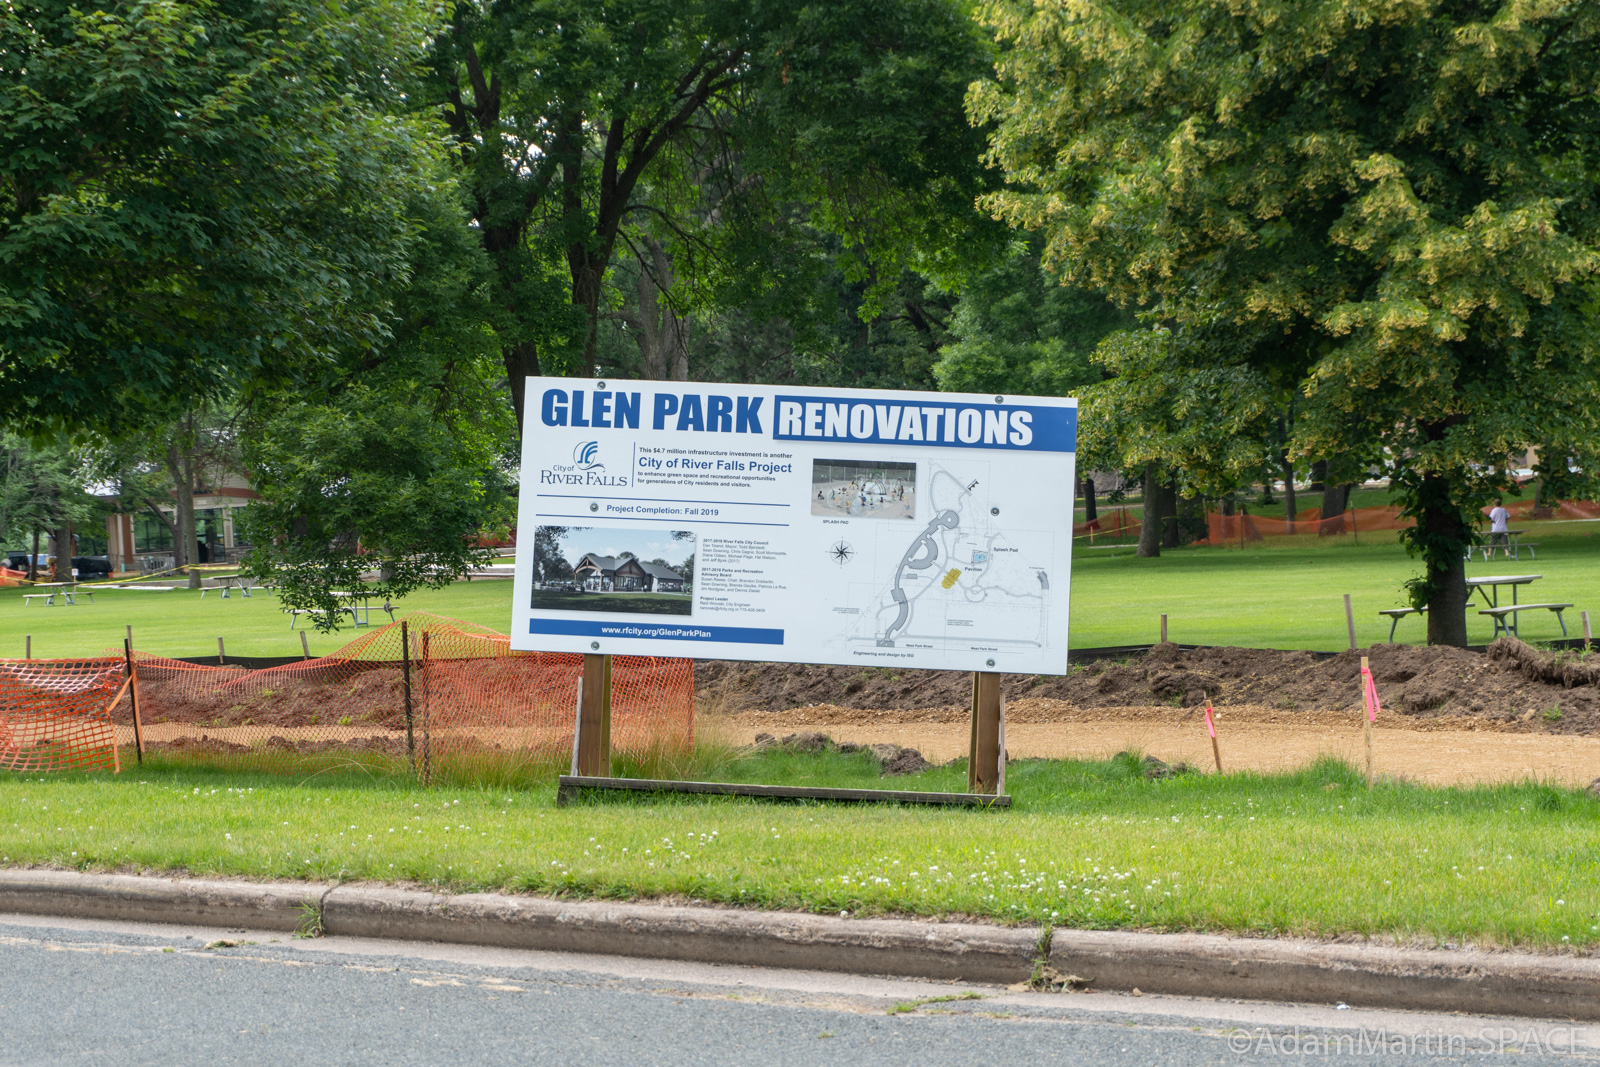 Glen Park - Closed for renovations until fall 2019